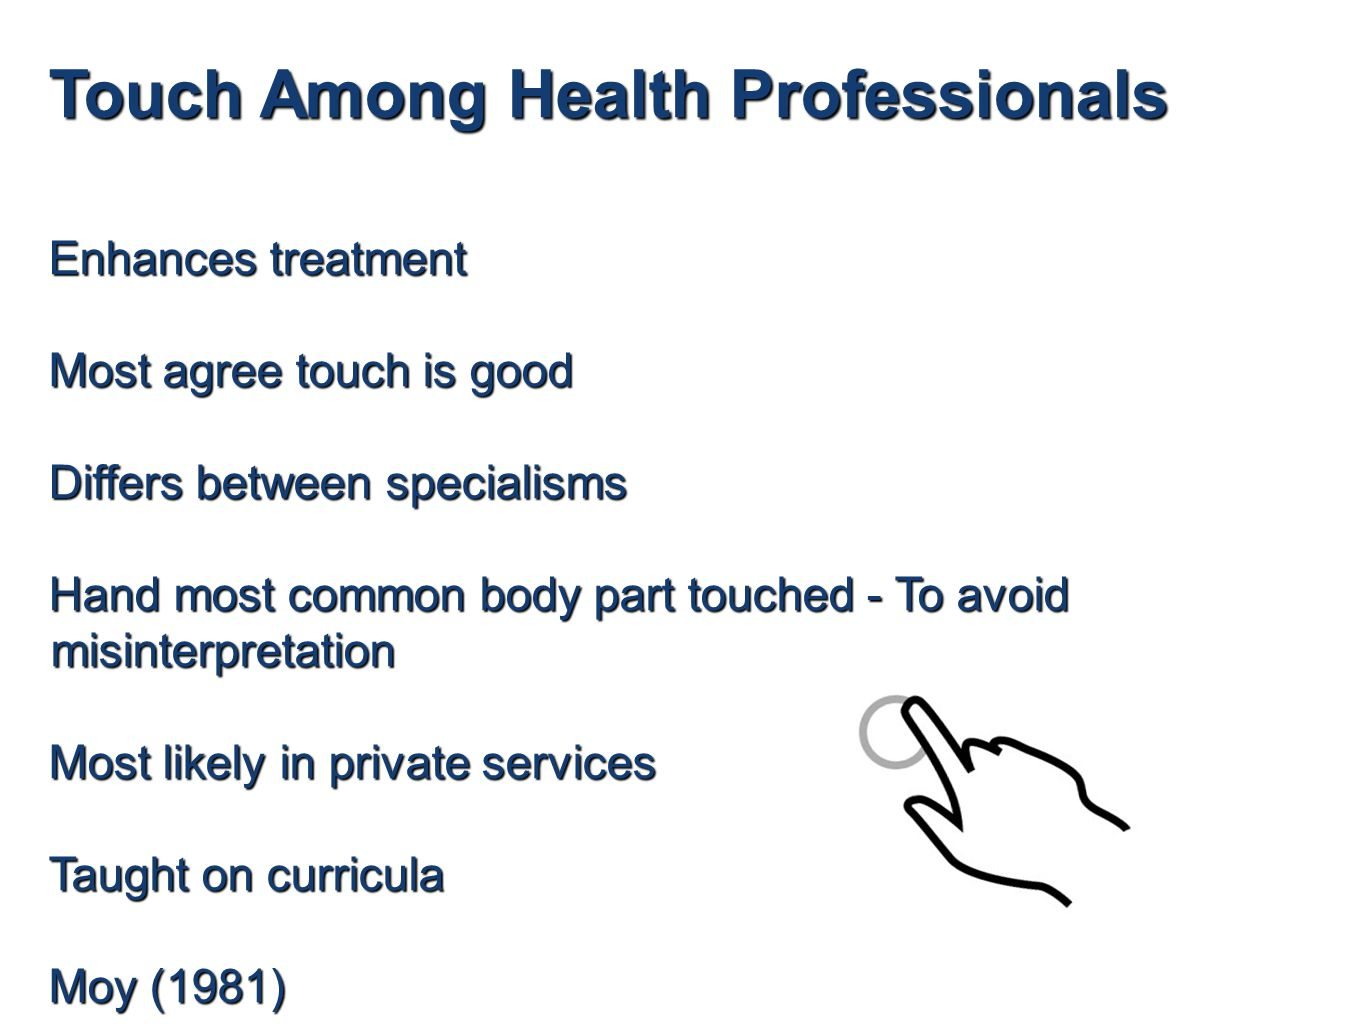 Touch Among Health Professionals Enhances treatment Most agree touch is good Differs between specialisms Hand most common body part touched - To avoid misinterpretation Most likely in private services Taught on curricula Moy (1981)